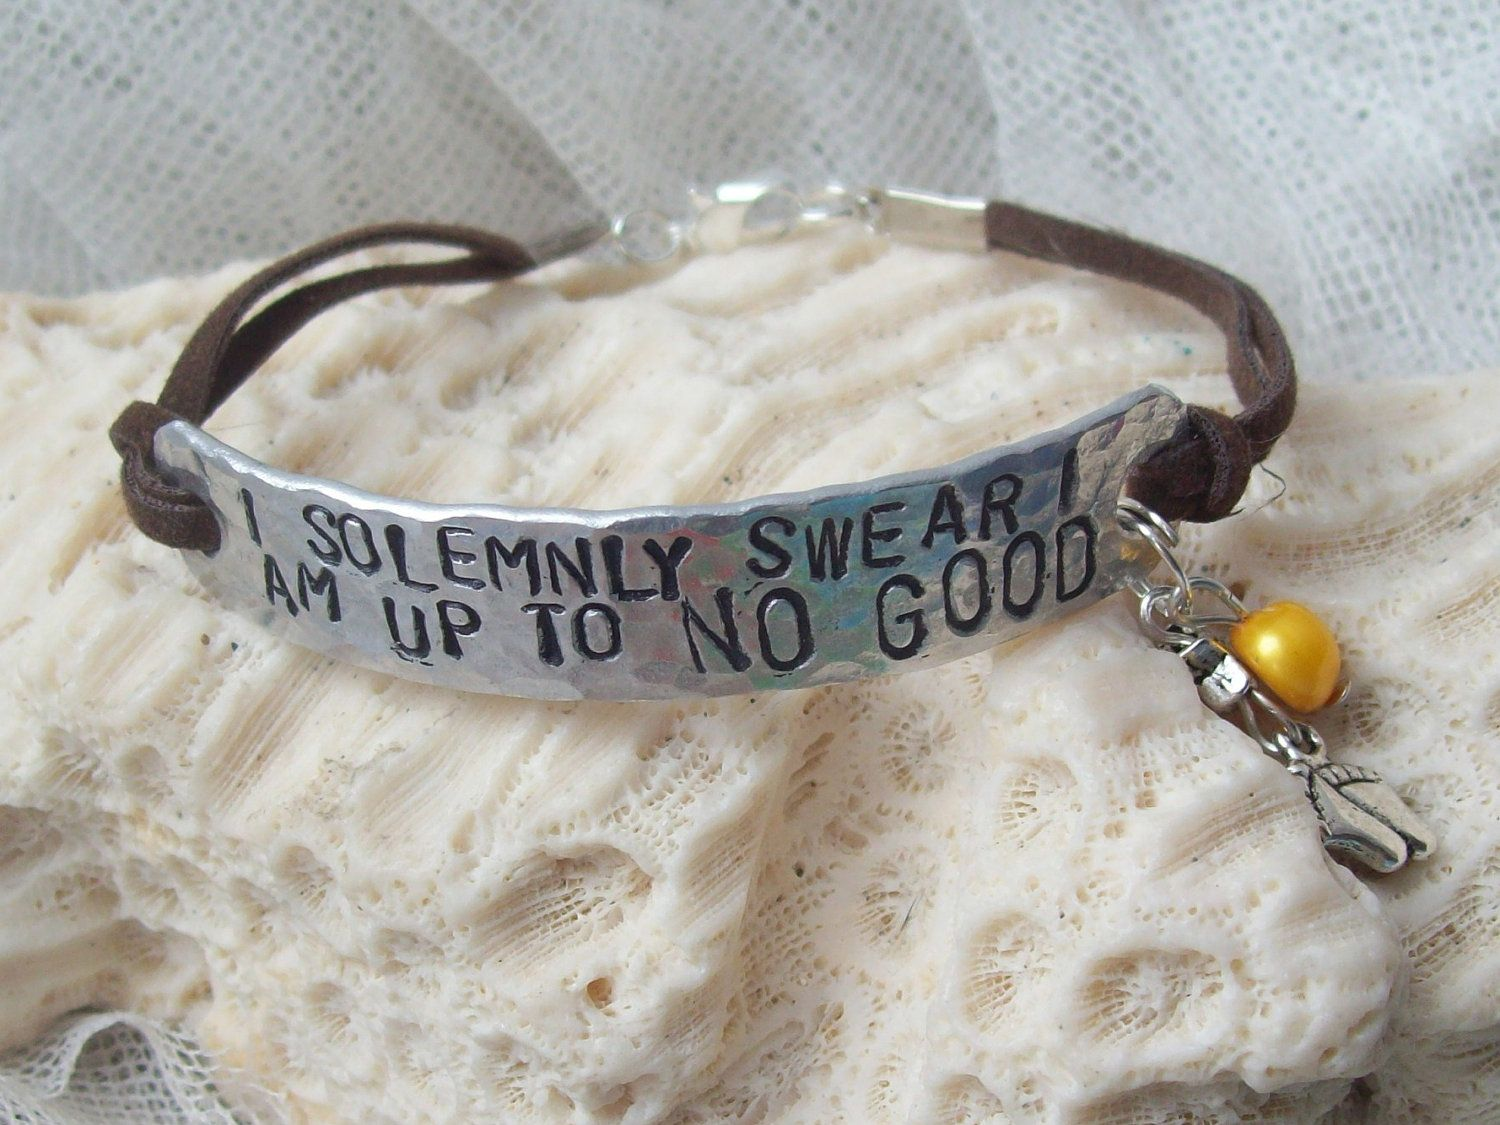 I SoLeMnLy SwEaR I aM uP tO nO GoOd - Wizard hand-stamped aluminum bracelet. $9.45, via Etsy.